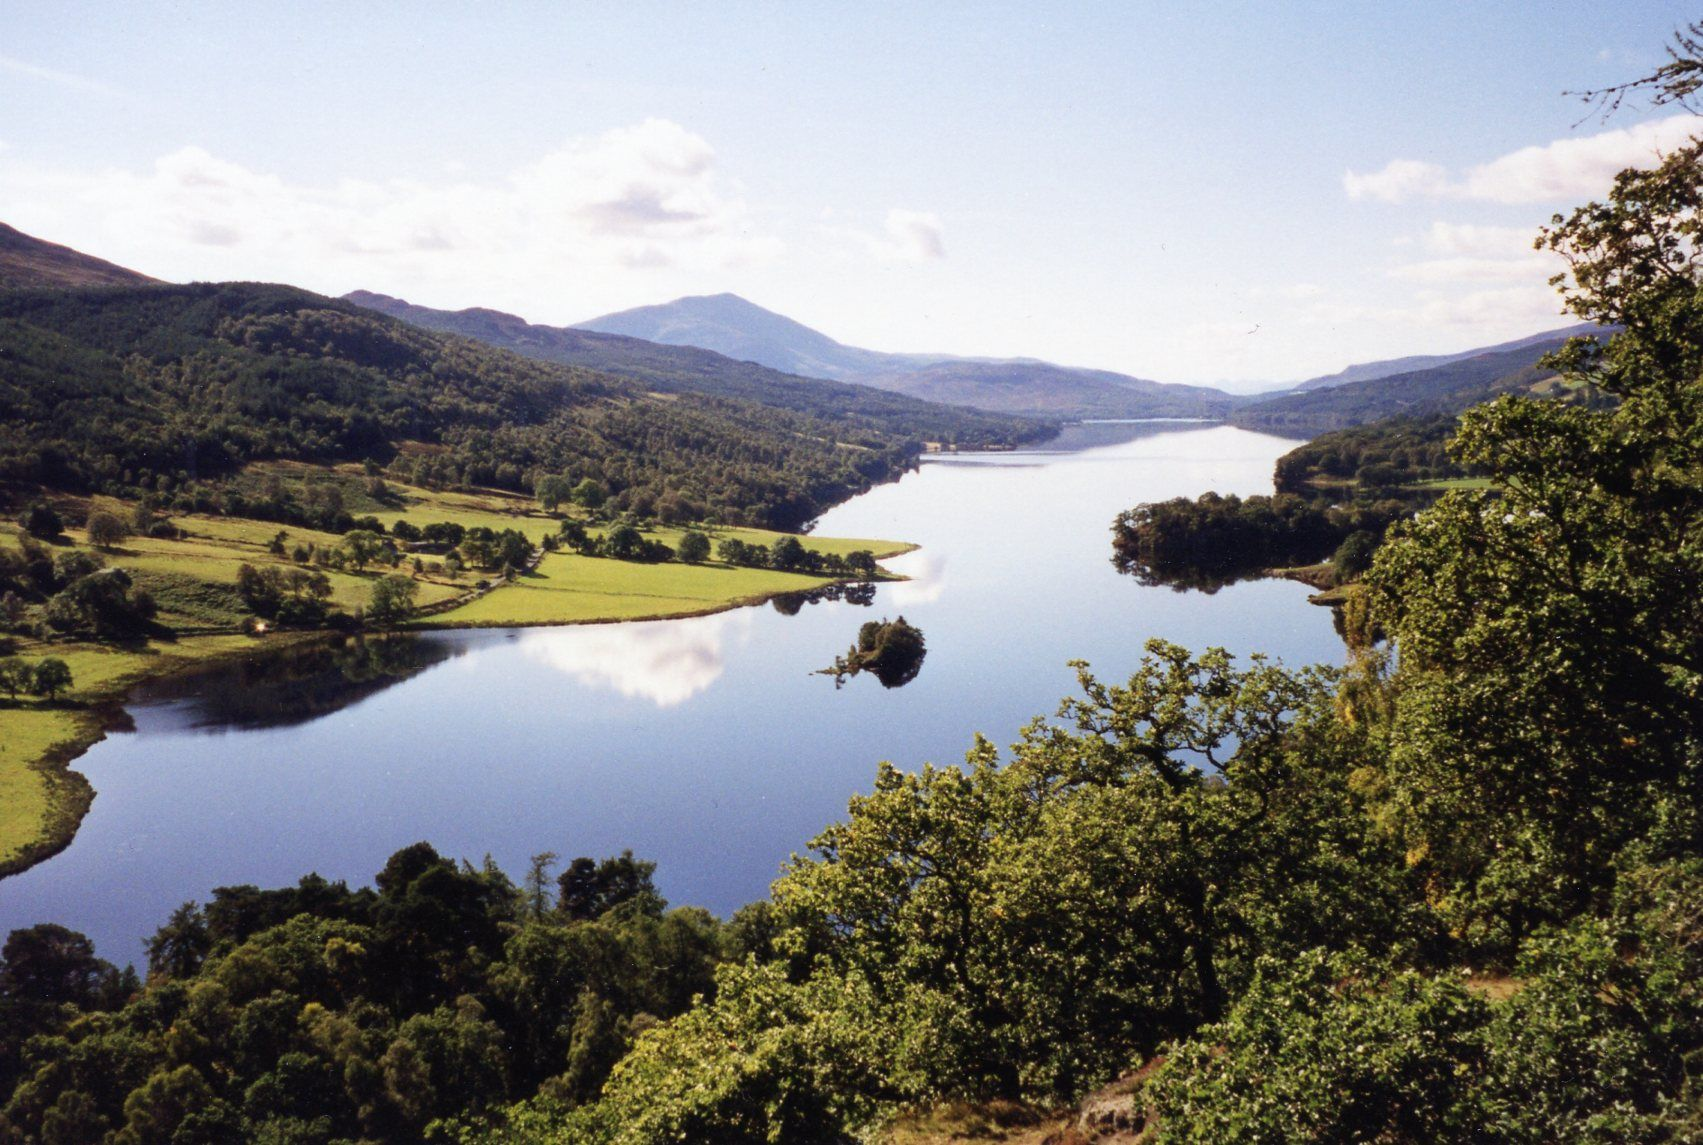 The Queen's View, near Pitlochry, Perthshire, Scotland.